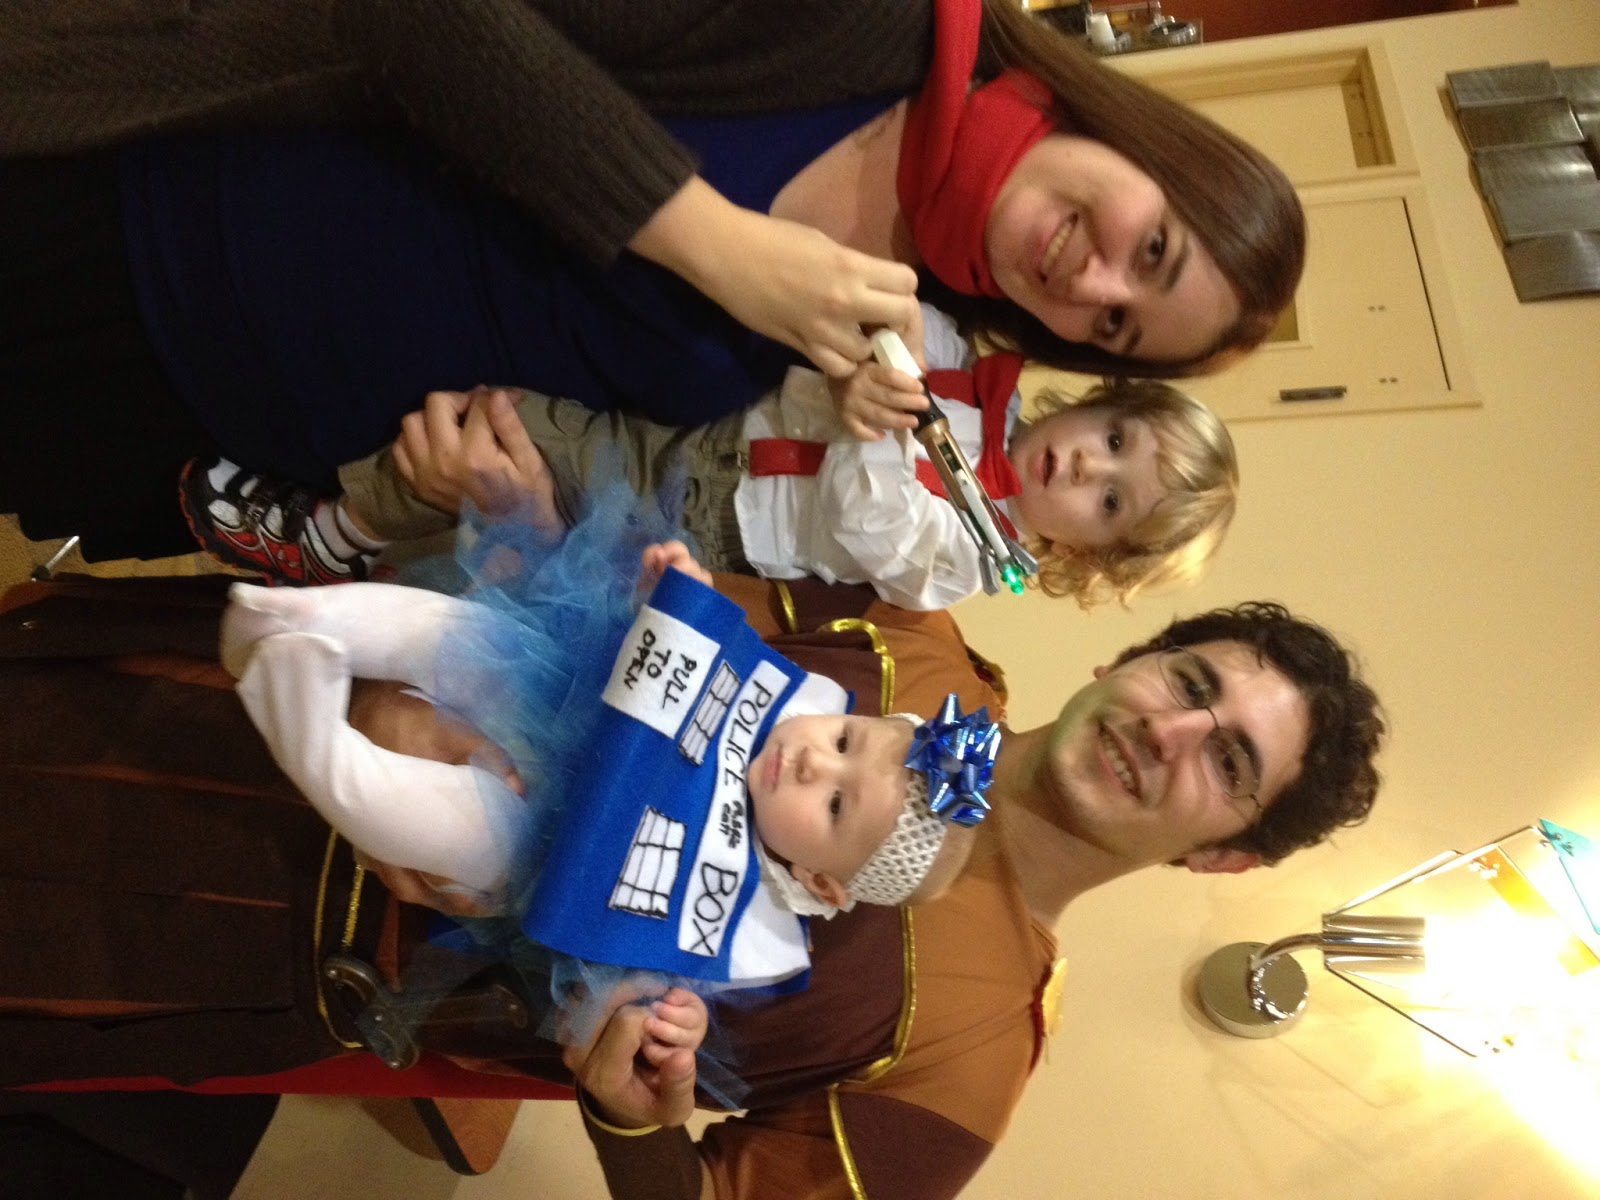 ... Doctor Who costumes. I ... & Homemaking Challenged: Doctor Who Halloween Costumes